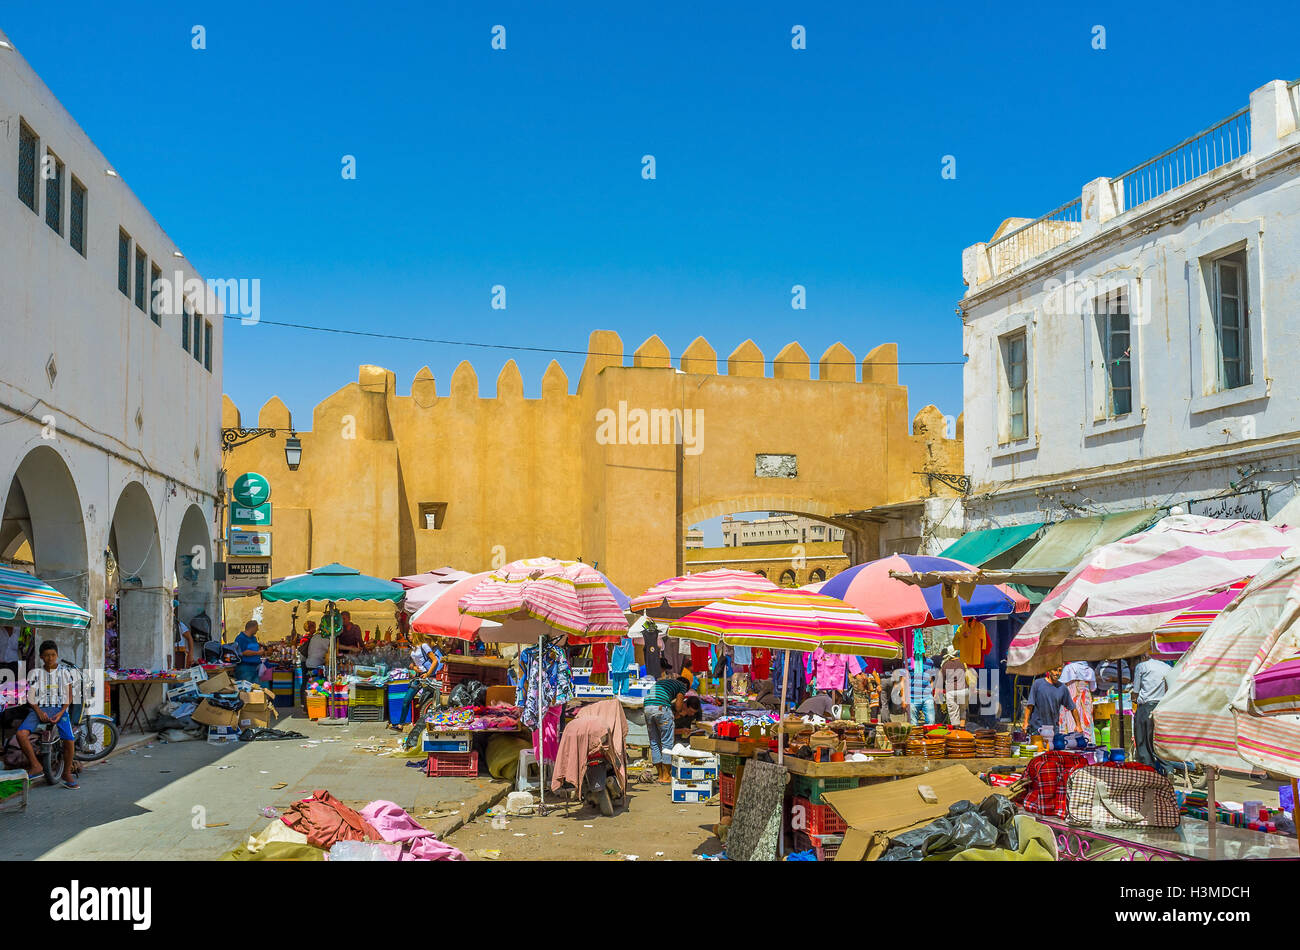 The souq at Bab Jebli gates isn't tourist destination, so it's radically different from neat and clean resort - Stock Image